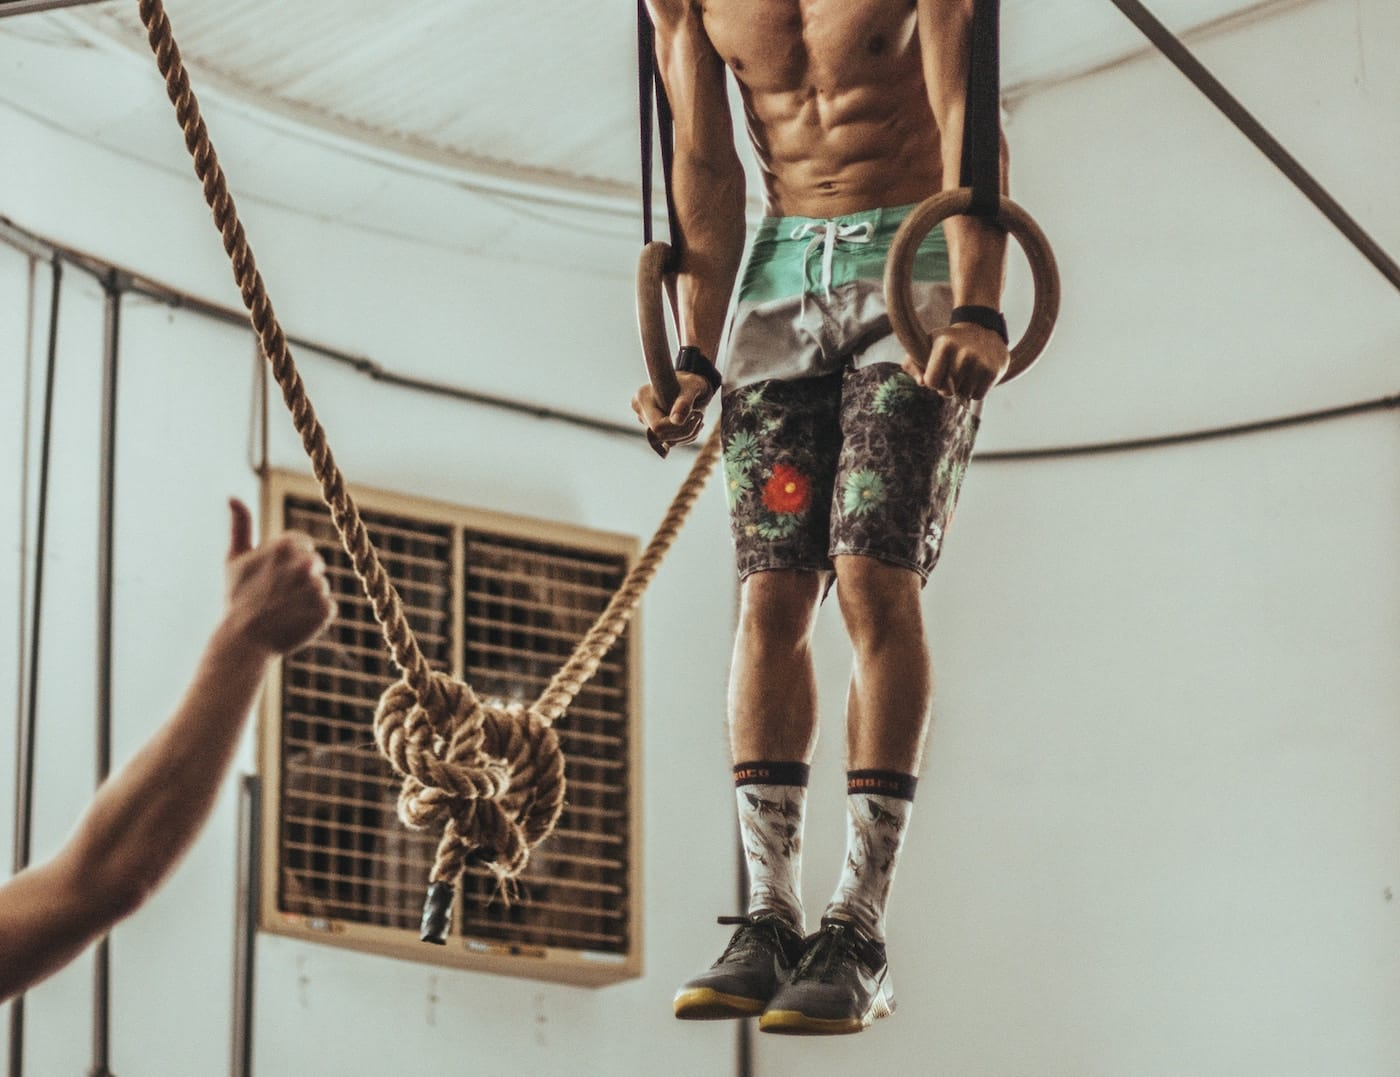 Best CrossFit gyms in Hong Kong: where you can get lean, get strong and get fast